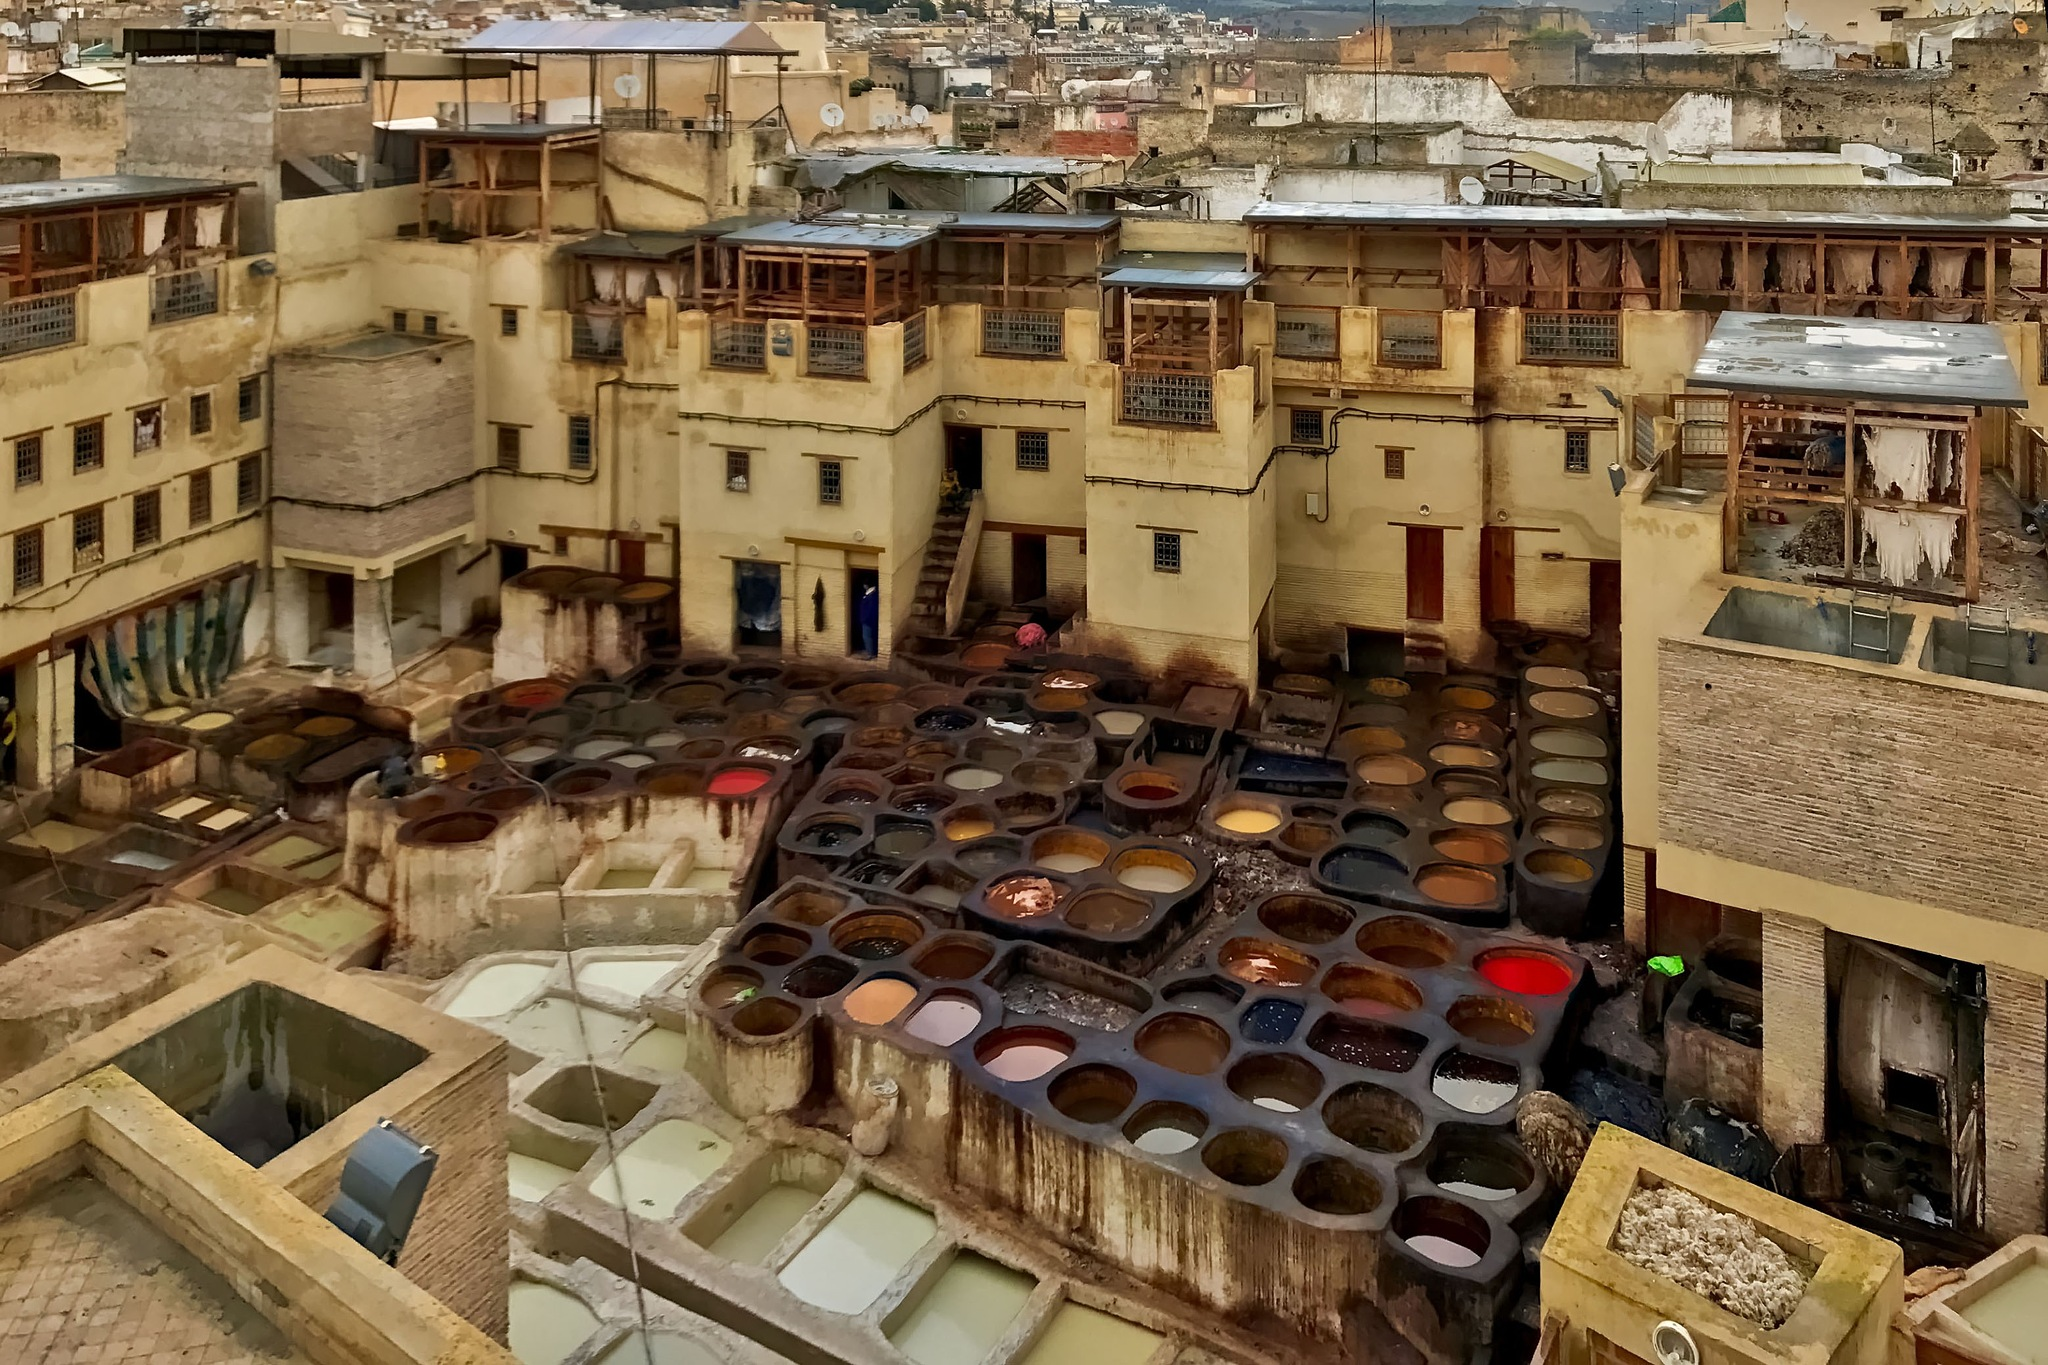 The leather tannery and dyeing operation at Fès in Morocco. by Erwin Widmer